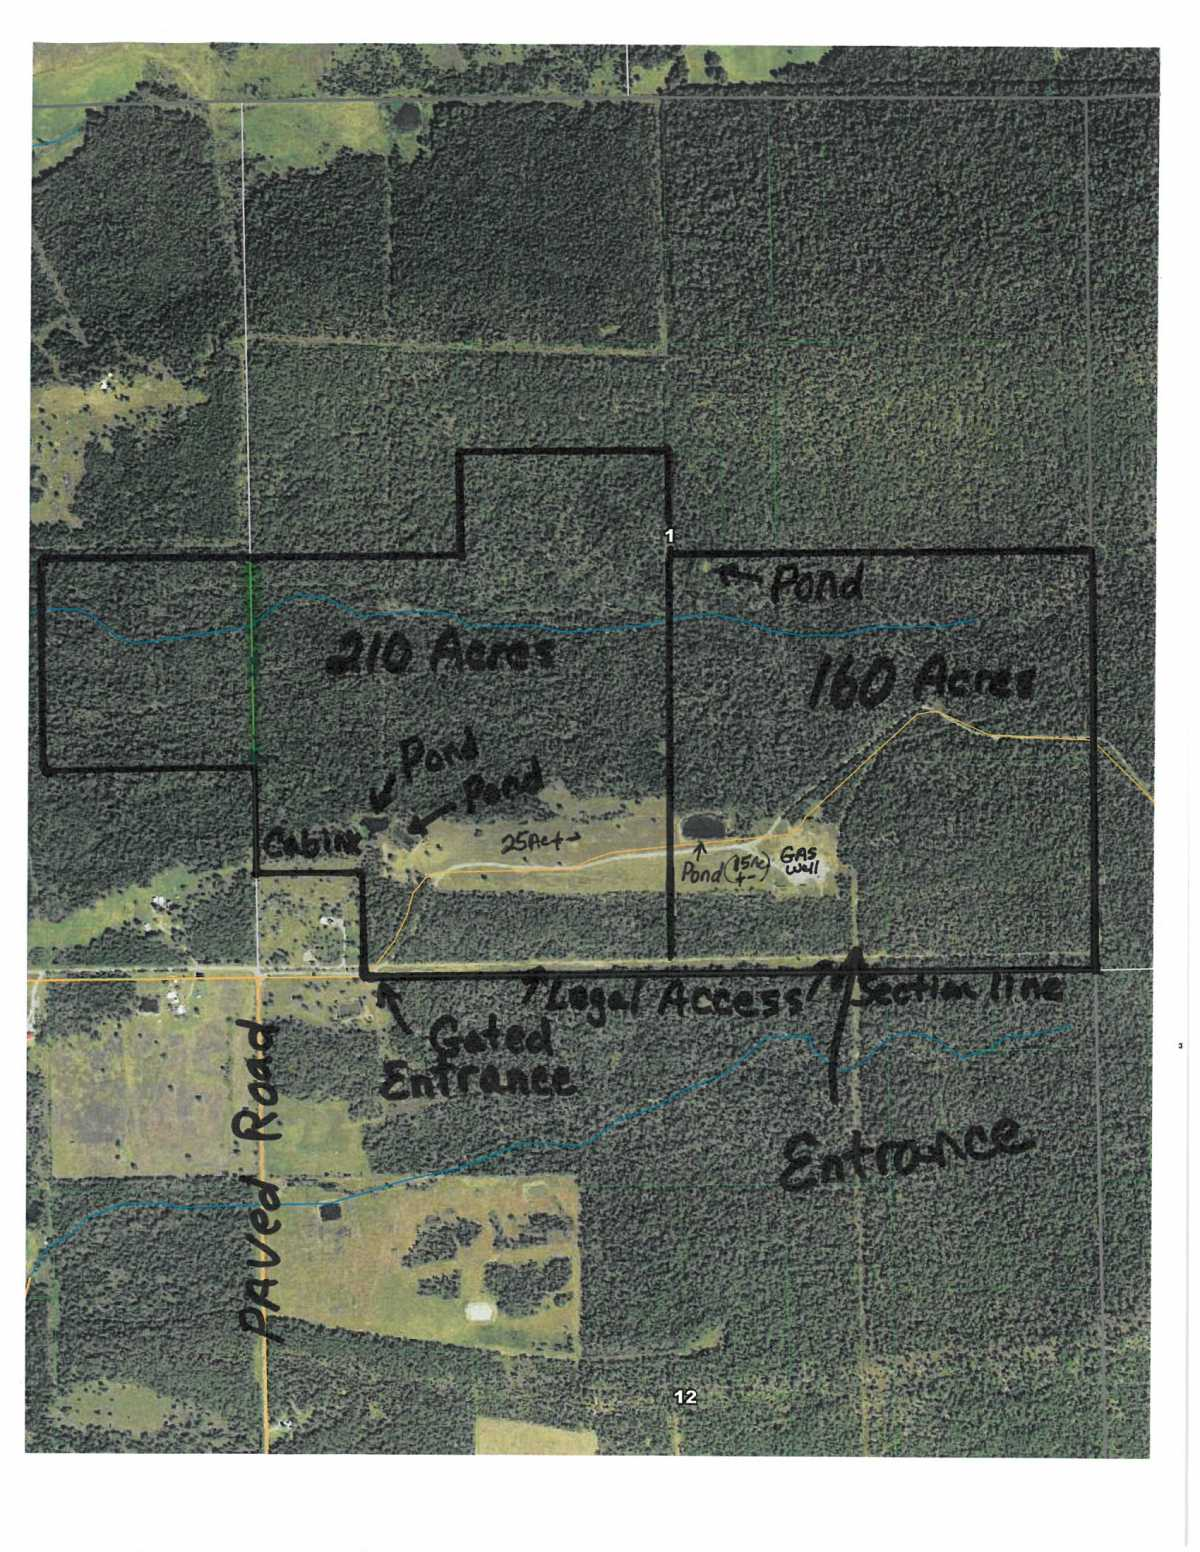 Oklahoma hunting land, OK hunting land pond, access hunting land OK | 160 Acres Holsten Lane Wilburton, OK 74578 0